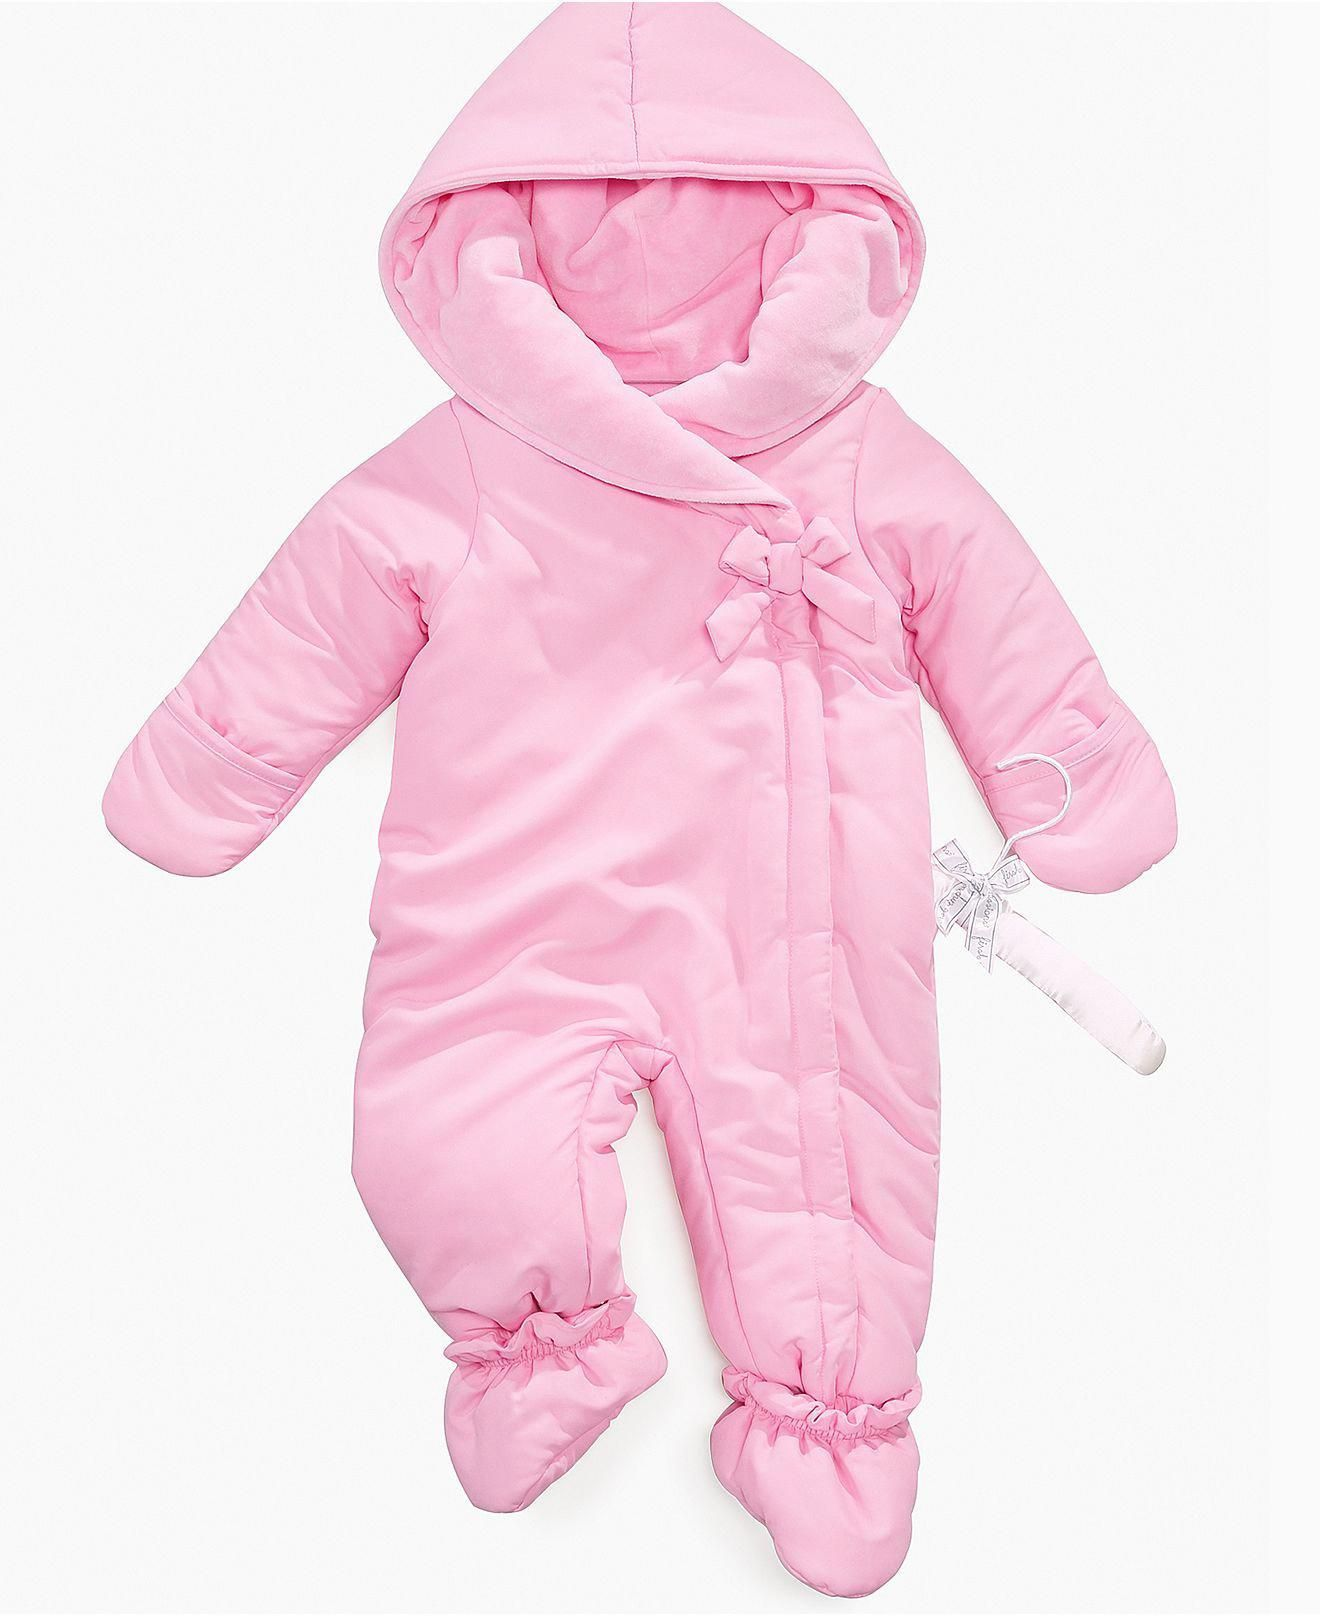 9db9afe58331 First Impressions Baby Boys or Baby Girls Fleece Hooded Jacket